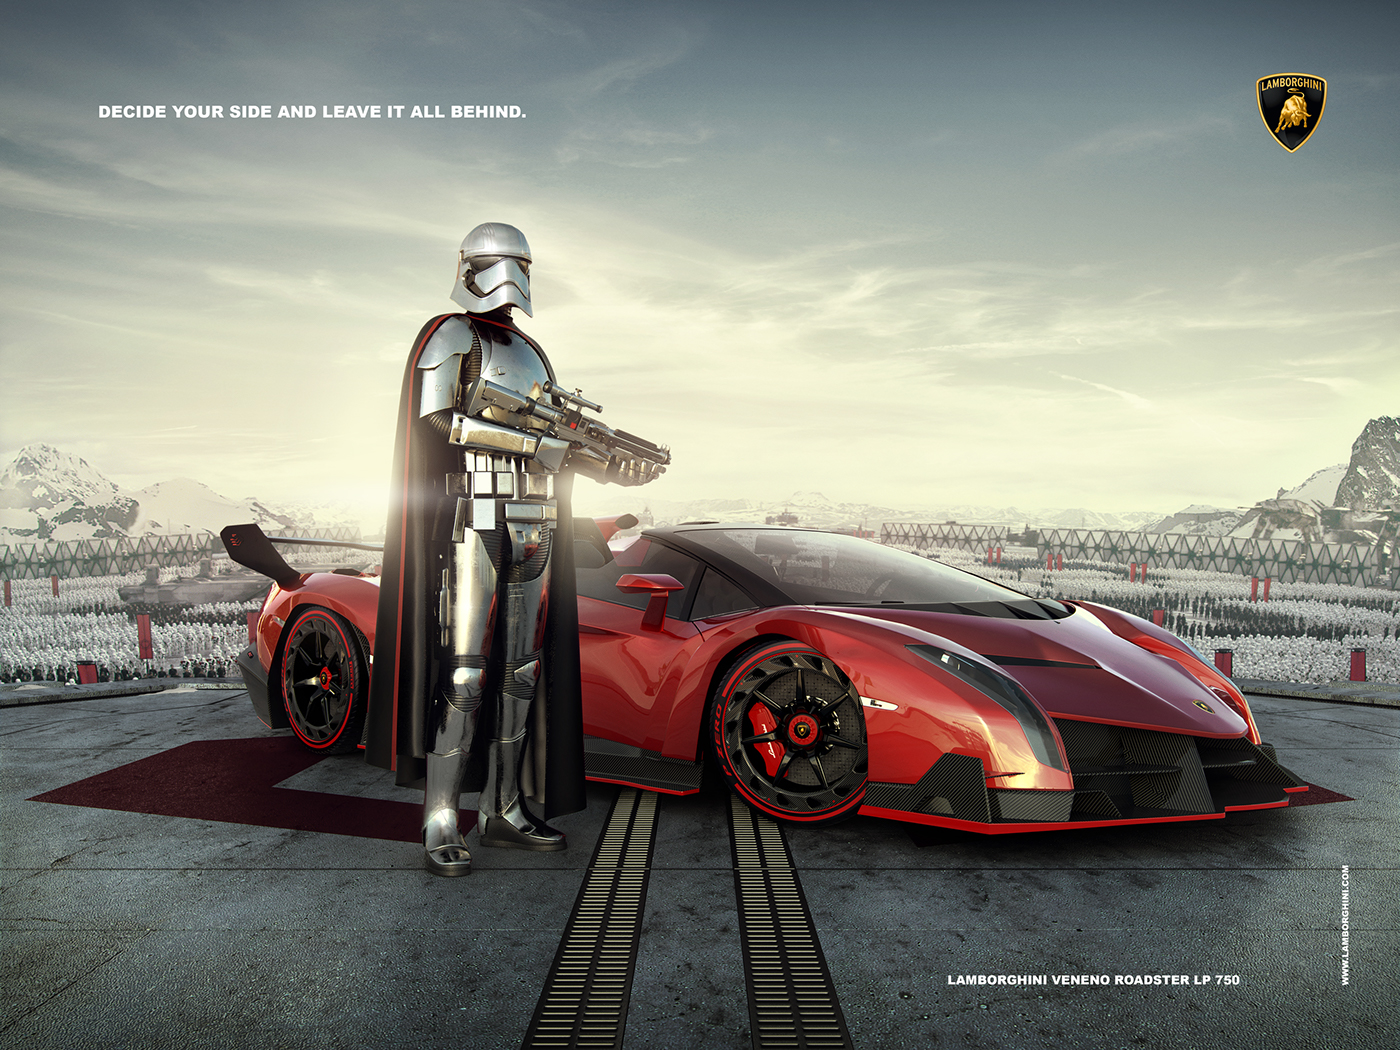 Lamborghini Advertising Captain Phasma On Behance